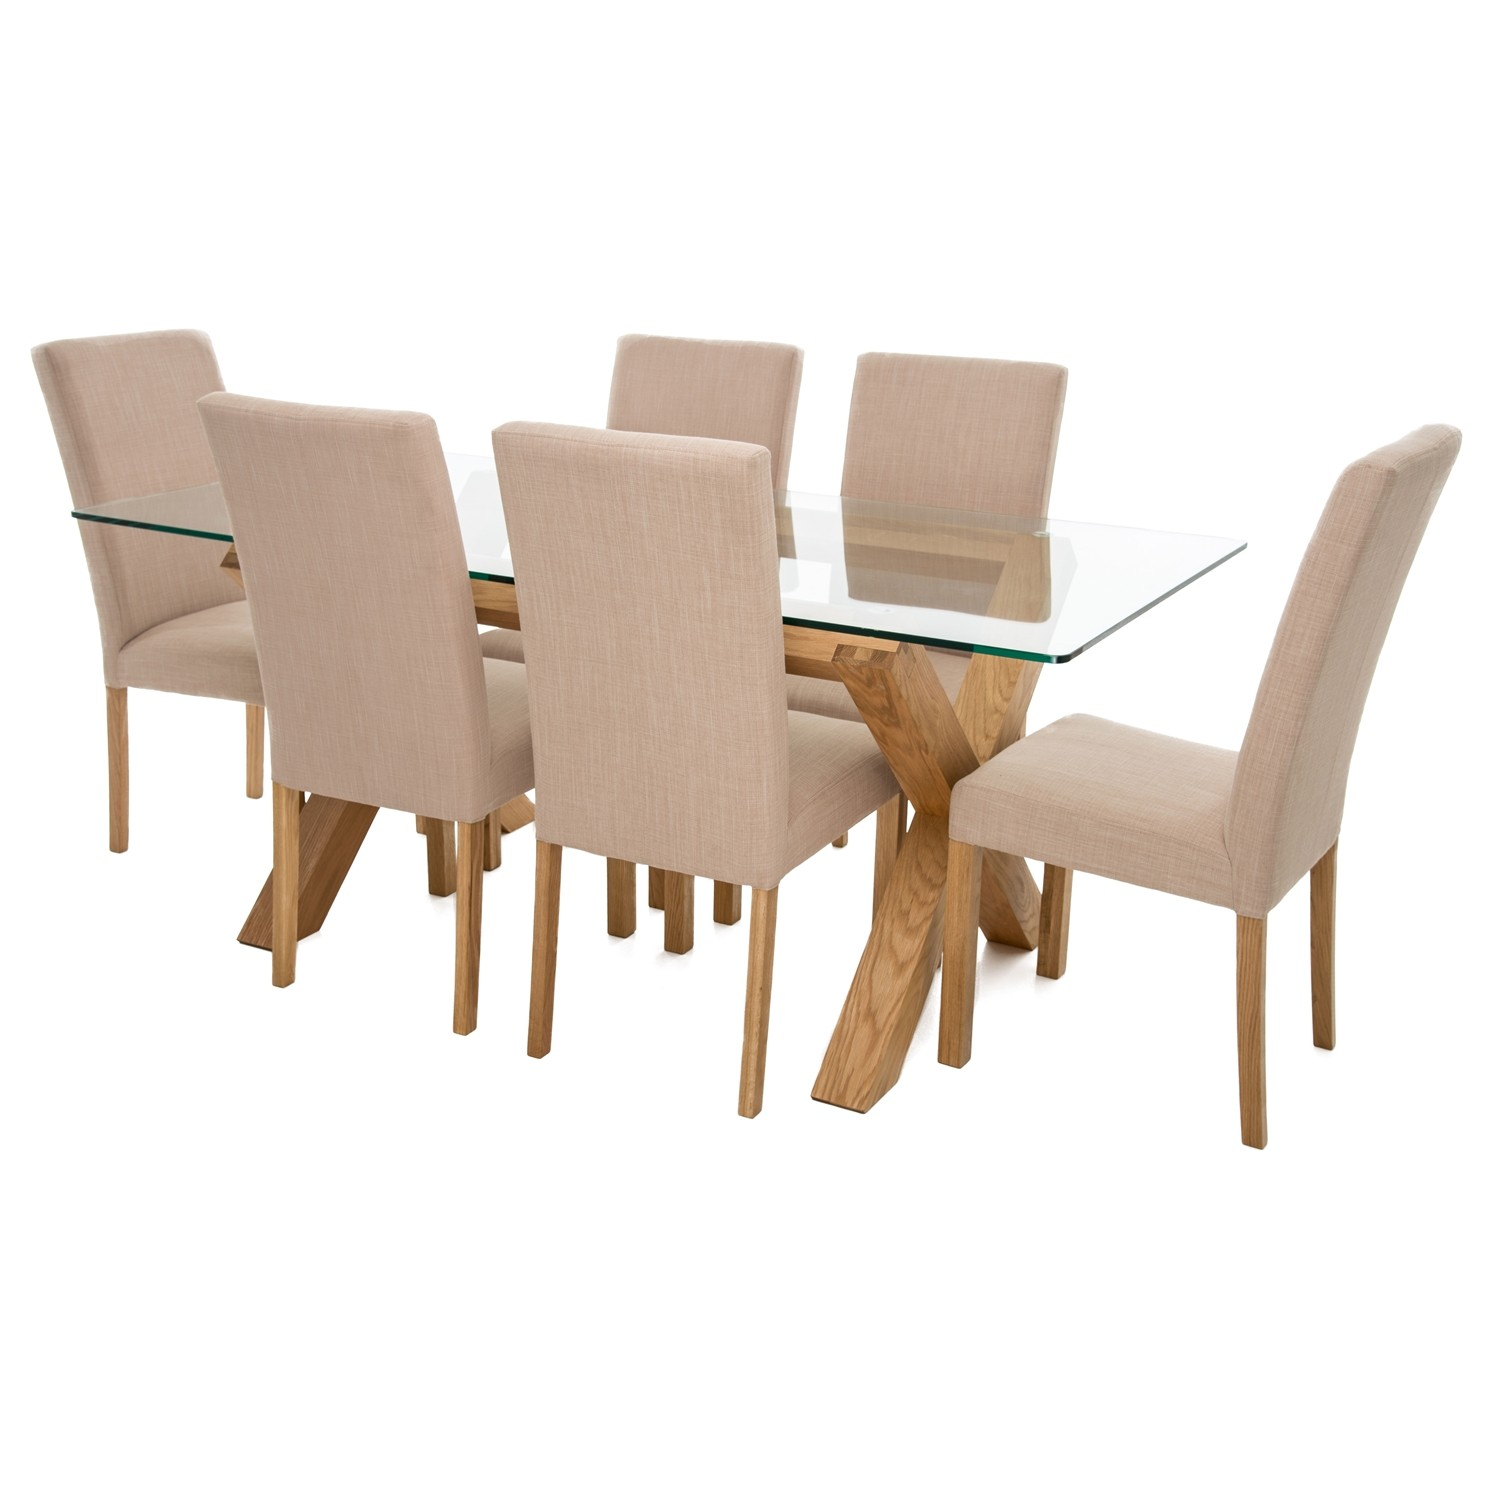 Dining table reasons why new dining tables are sweeter for Dining room table 2